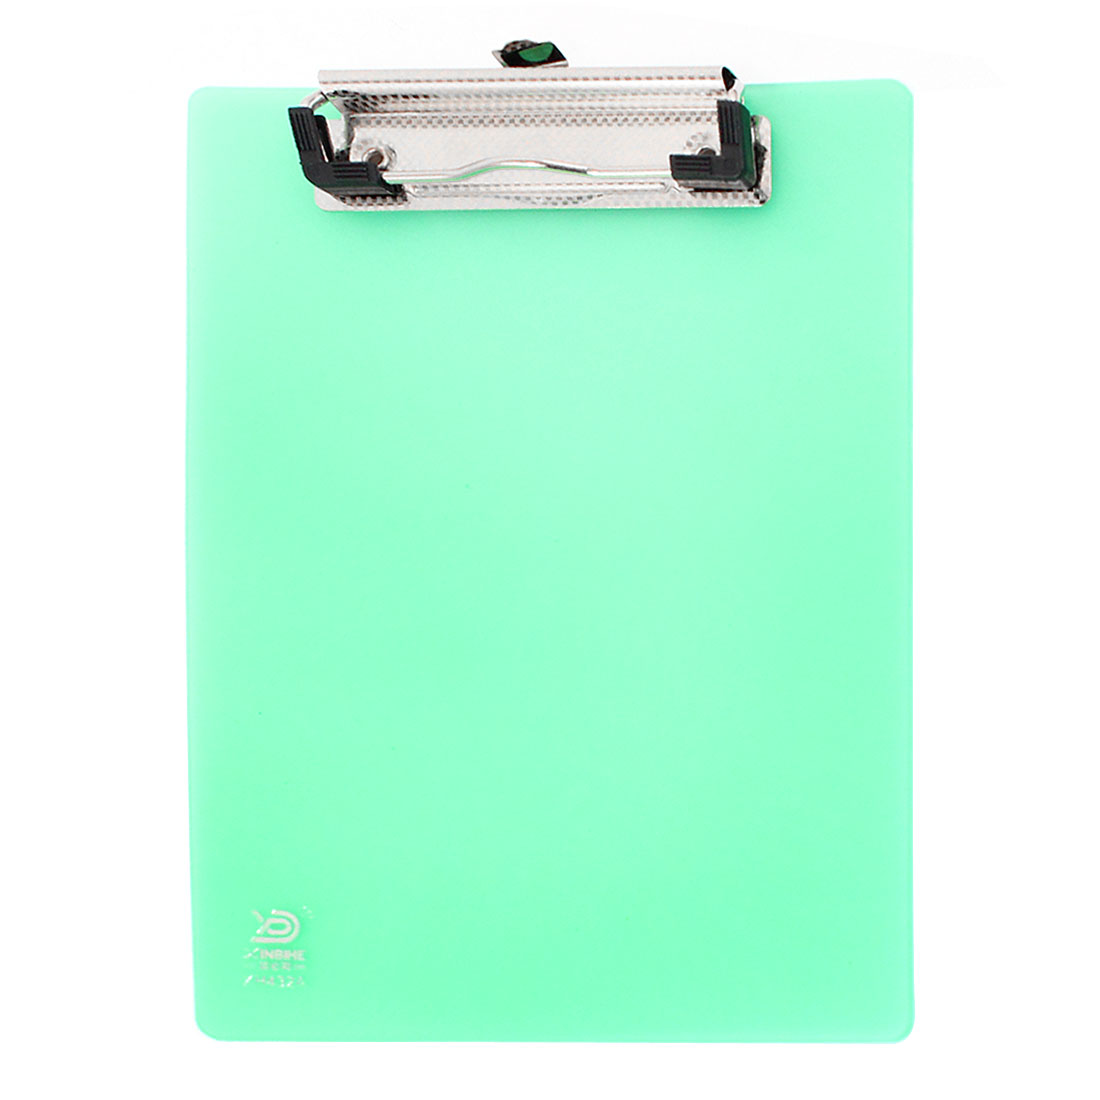 Office File Holding Light Green Plastic Clip Board 230 x 160mm for A5 Paper